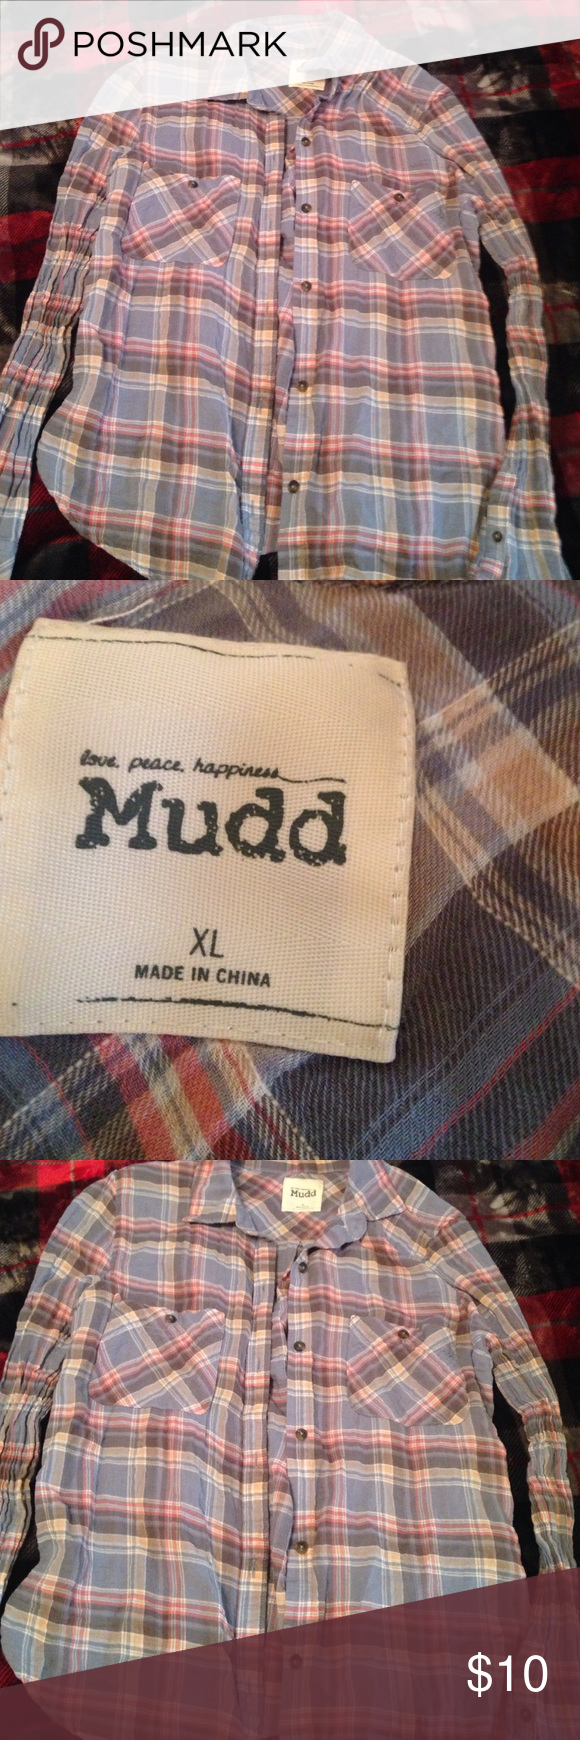 Gangster flannel shirts  Long sleeve flannel Very comfy looks cute worn opened with a white